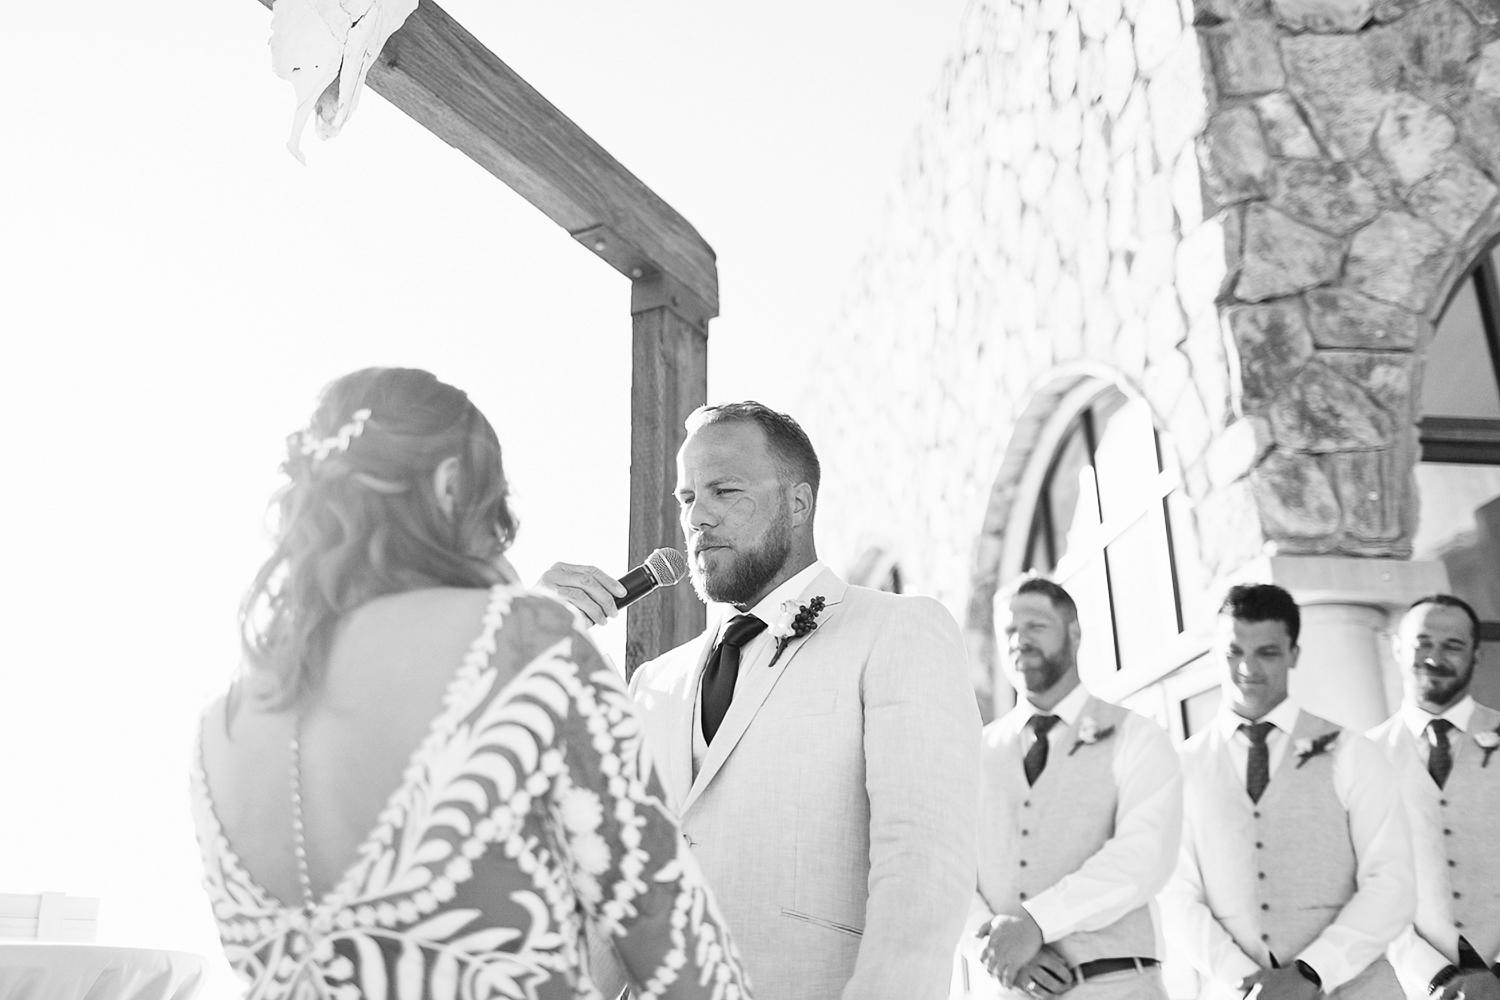 cabo-san-lucas-wedding-travelling-destination-wedding-photographer-toronto-wedding-photographers-3b-photography-hipster-trendy-documentary-style-mexico-wedding-ceremony-bride-and-groom-vows-ocean-view-cabo-grooms-vows-candid-emotional.jpg